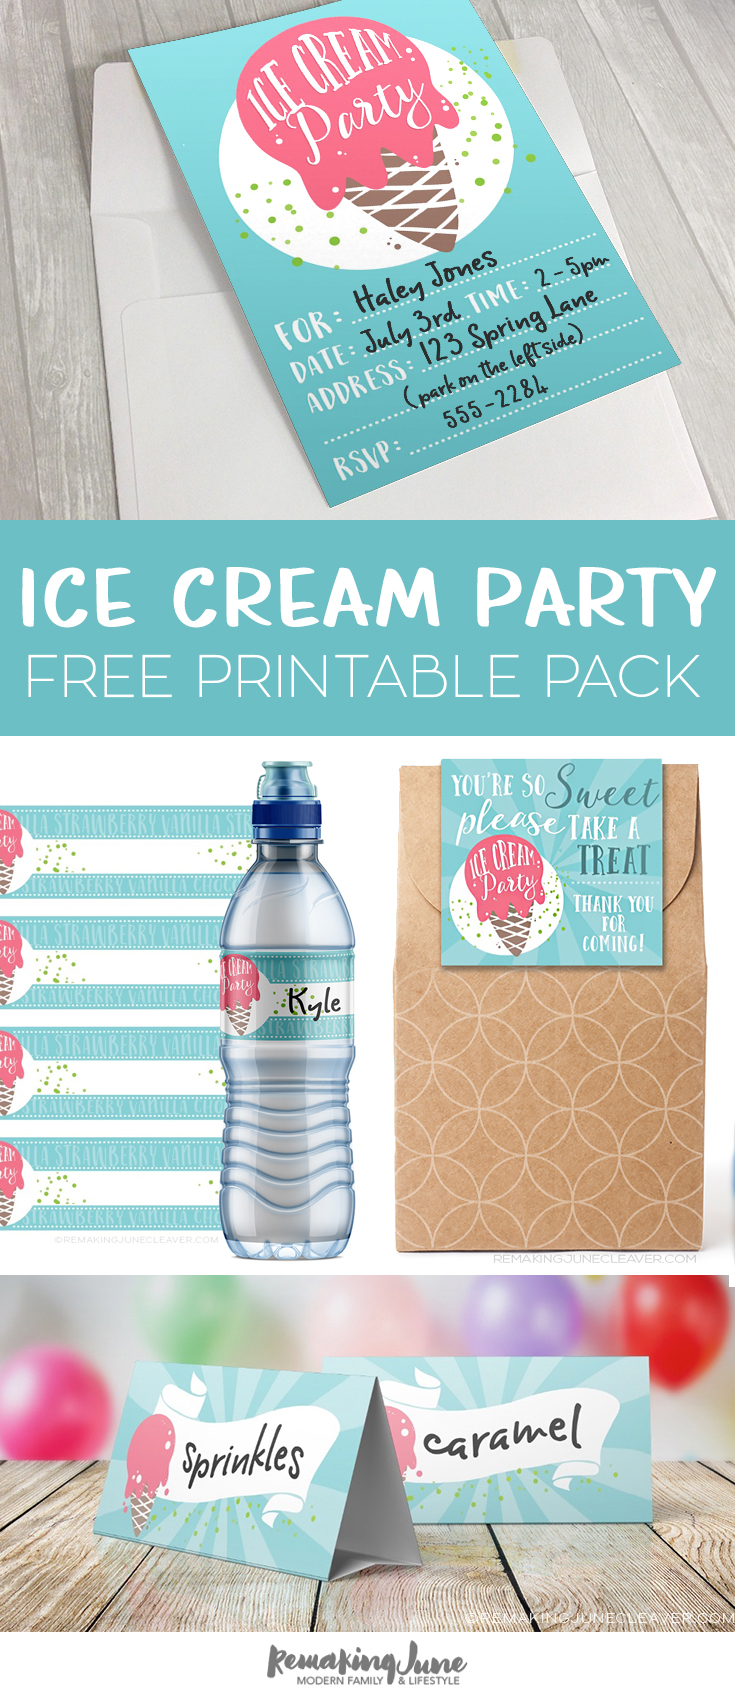 free printable ice cream party pack from RemakingJune